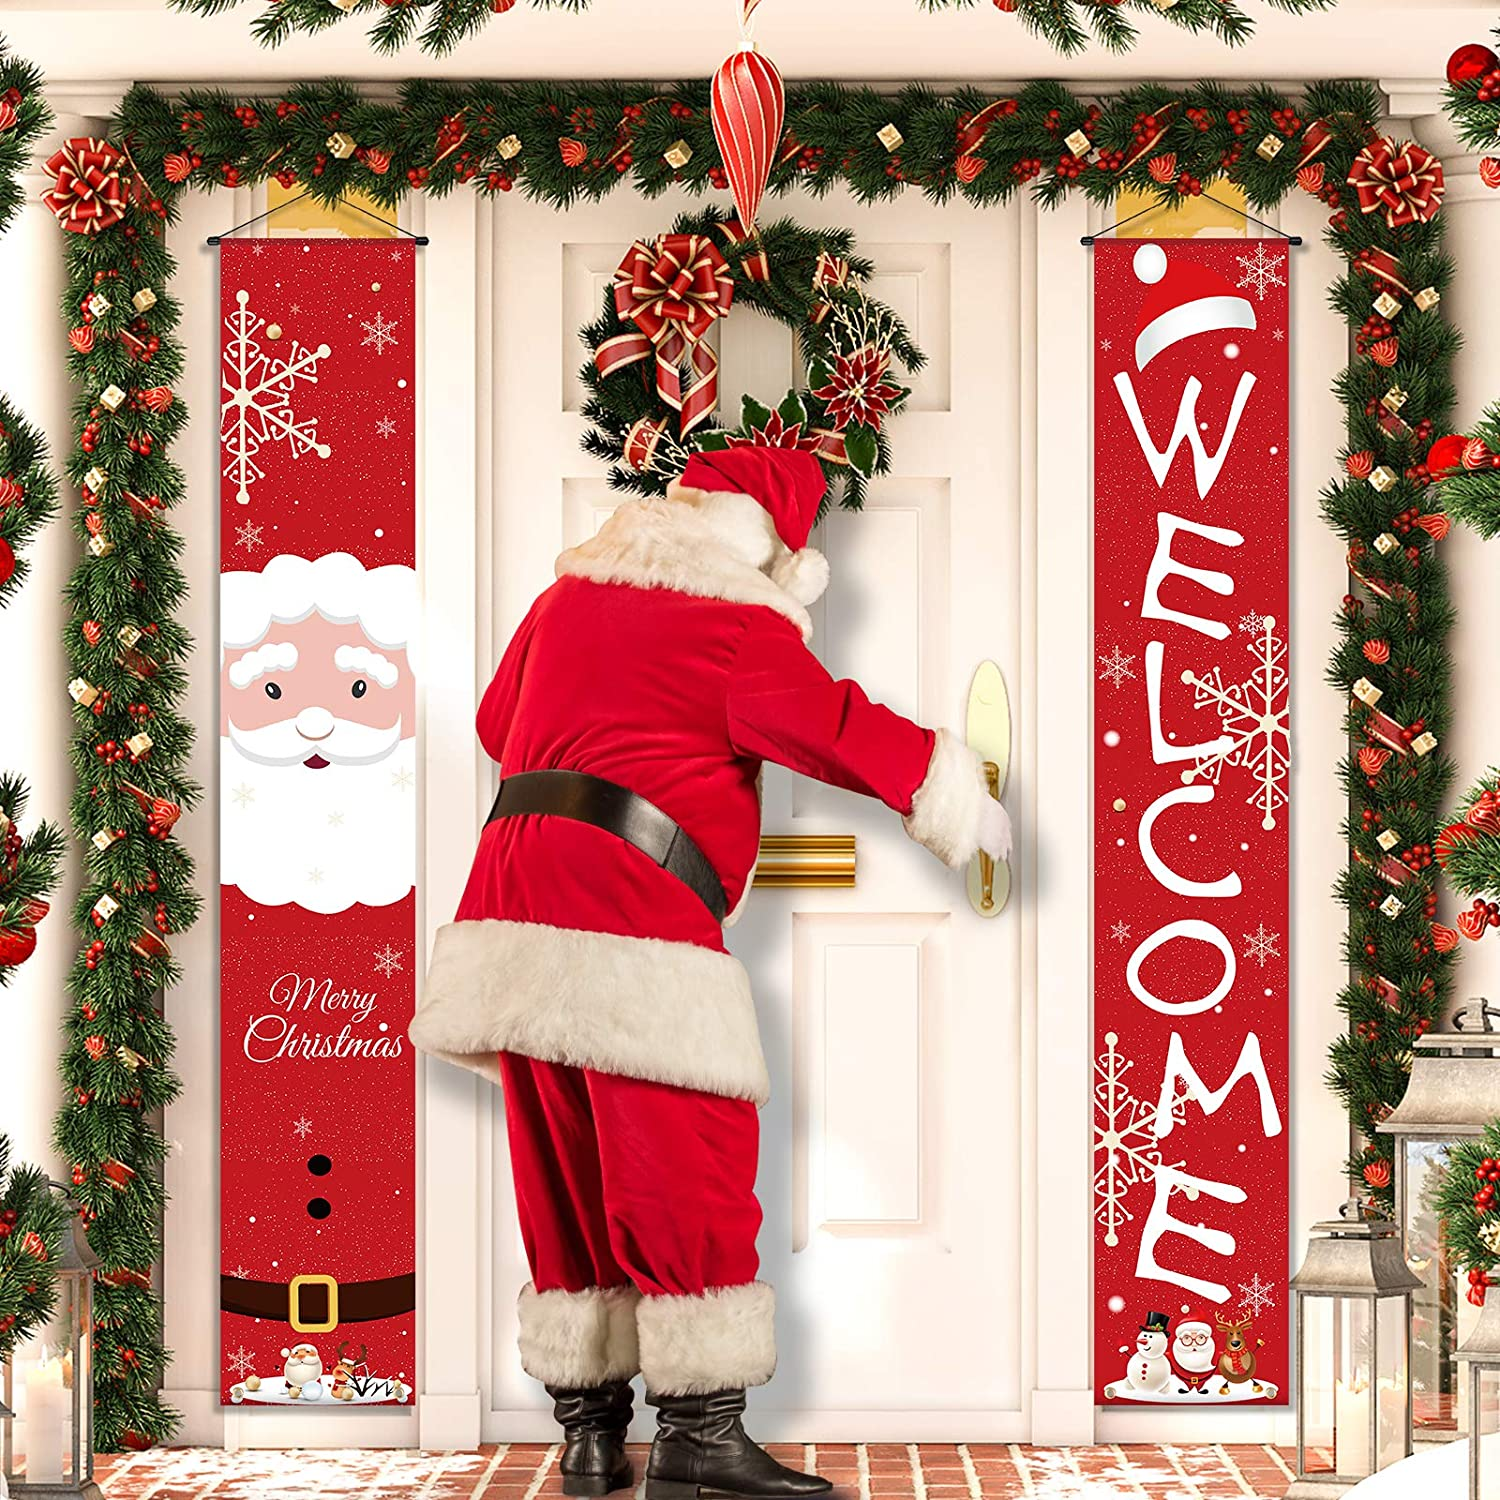 Christmas Decorations, Merry Christmas Banner with Santa Clause Sign, Welcome Christmas Hanging Sign, Bright Red Christmas Porch Wall Decor for Outdoor Indoor Front Door Yard Party New Year Holiday